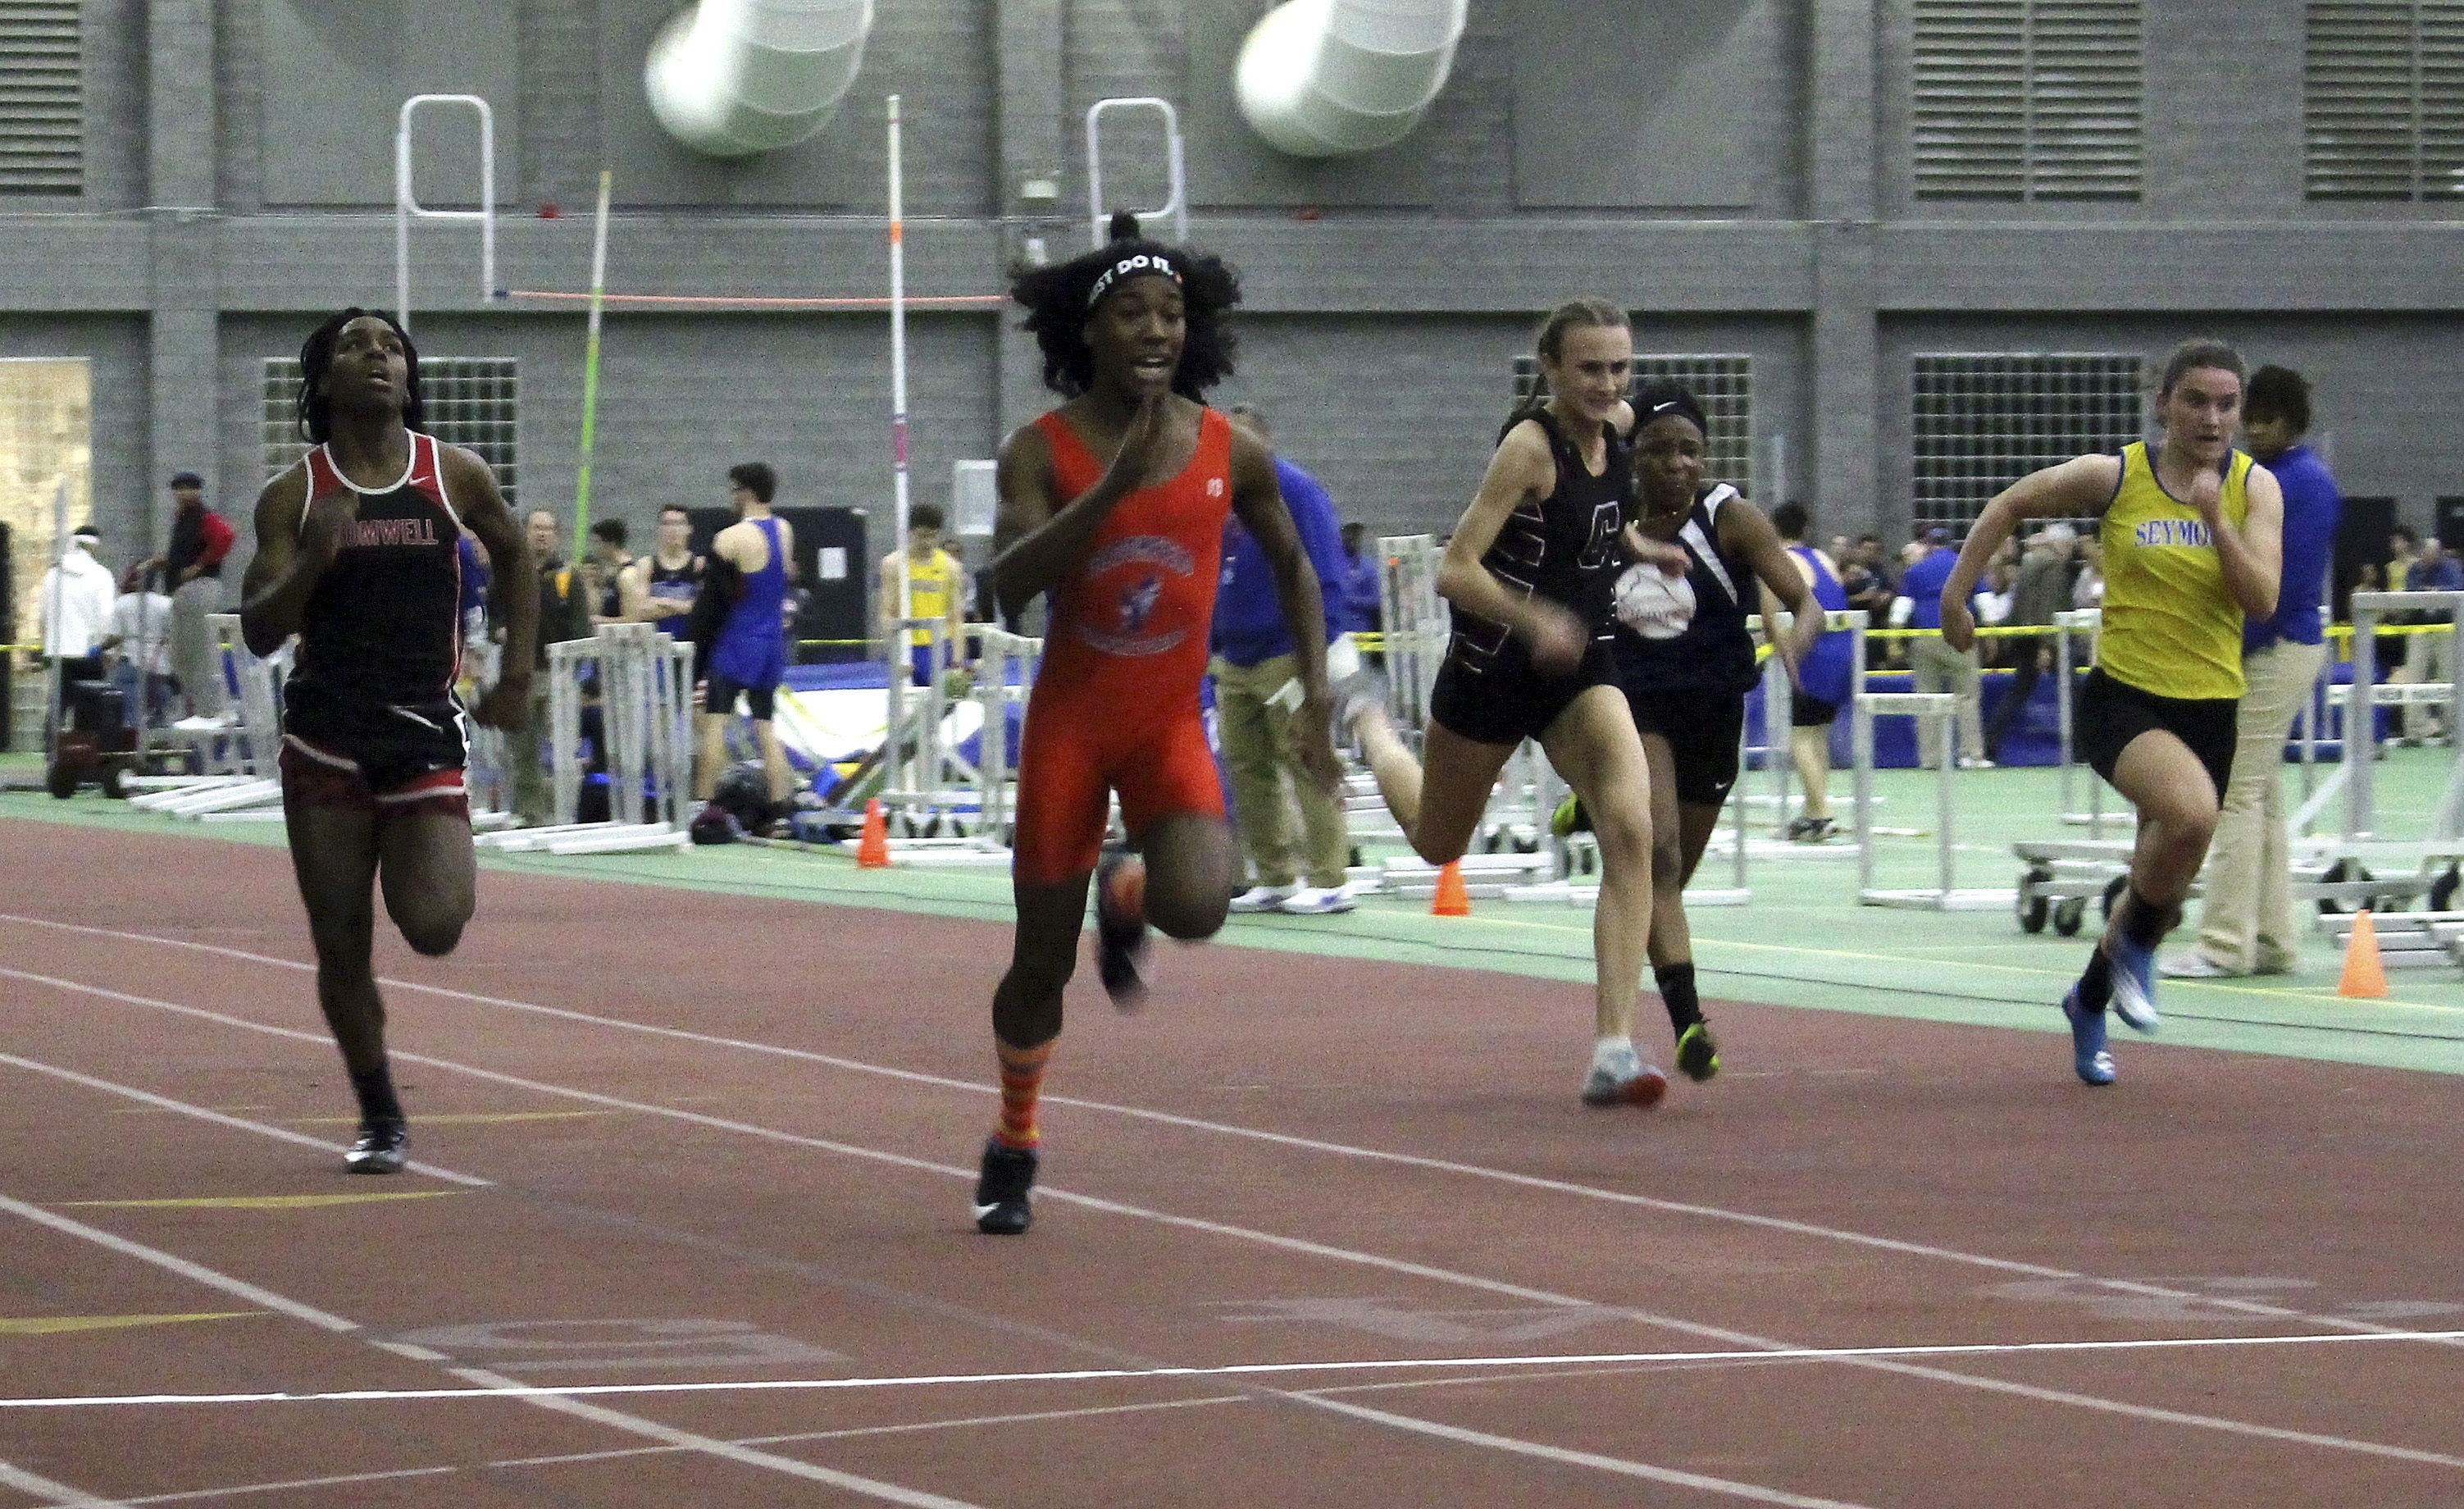 In this Feb. 7, 2019, file photo, Bloomfield High School transgender athlete Terry Miller, second from left, wins the final of the 55-meter dash over transgender athlete Andraya Yearwood, far left, and other runners in the Connecticut girls Class S indoor track meet at Hillhouse High School in New Haven, Conn.